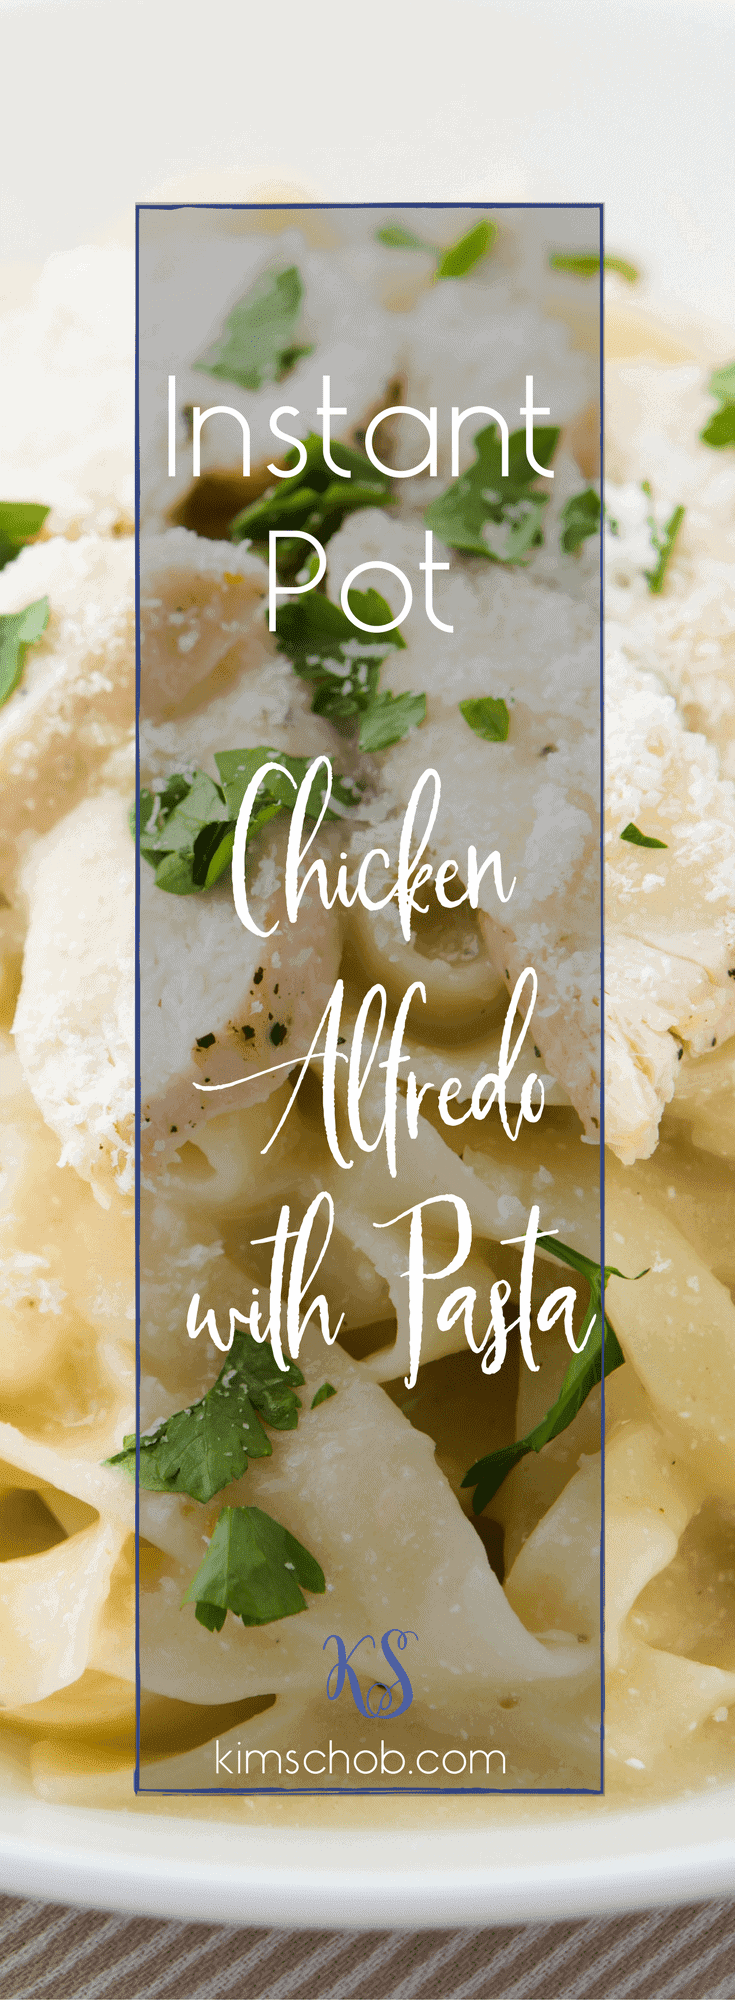 Instant Pot-Chicken Alfredo with Pasta | packs a ton of flavor into every bite.  #instantpotrecipe #kimschob #chickenalfredowithpasta